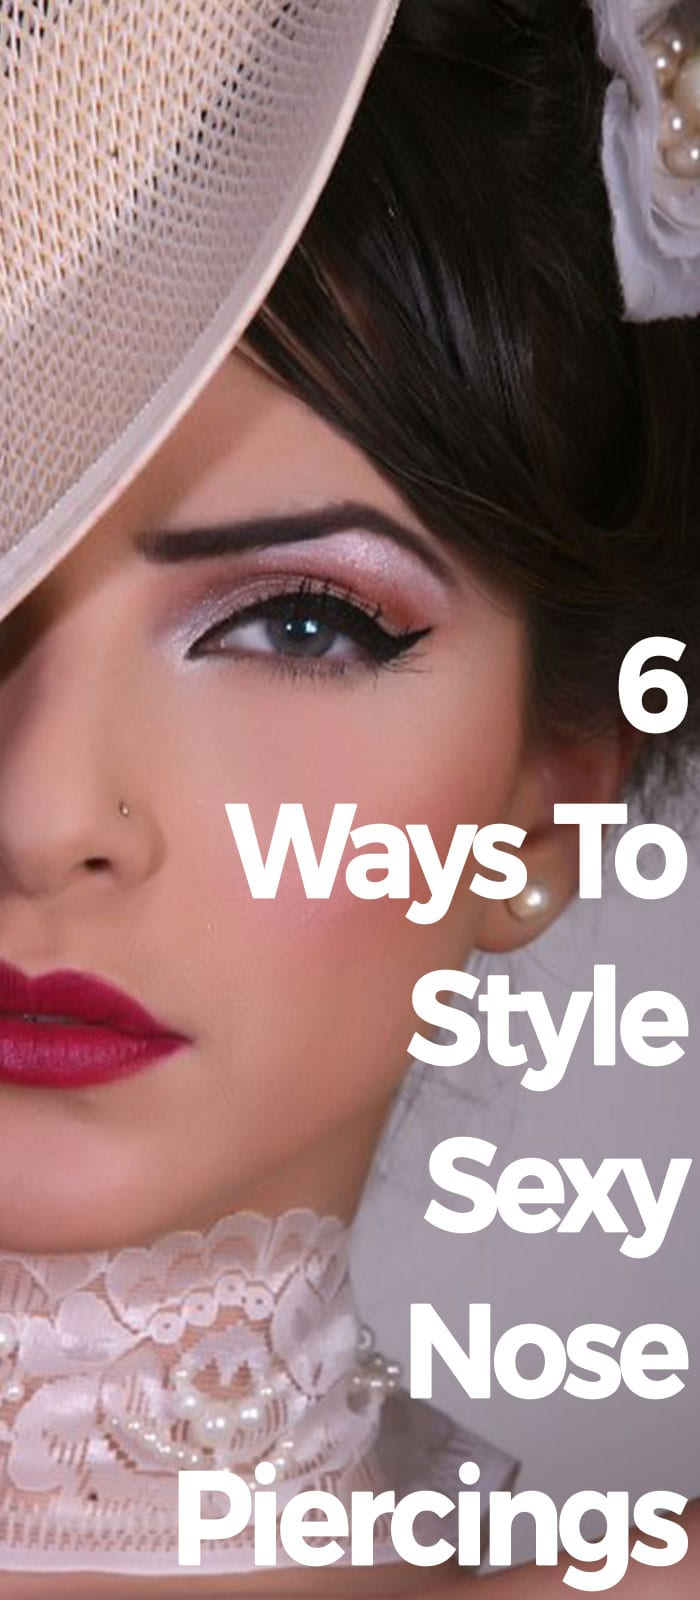 6 Ways To Style Sexy Nose Piercings.